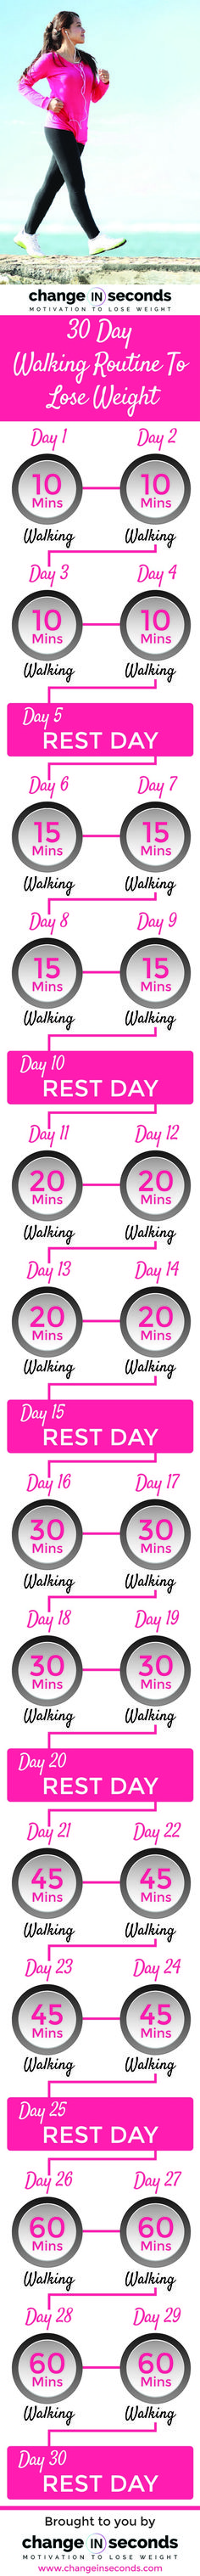 30 Day Walking Routine To Lose Weight.